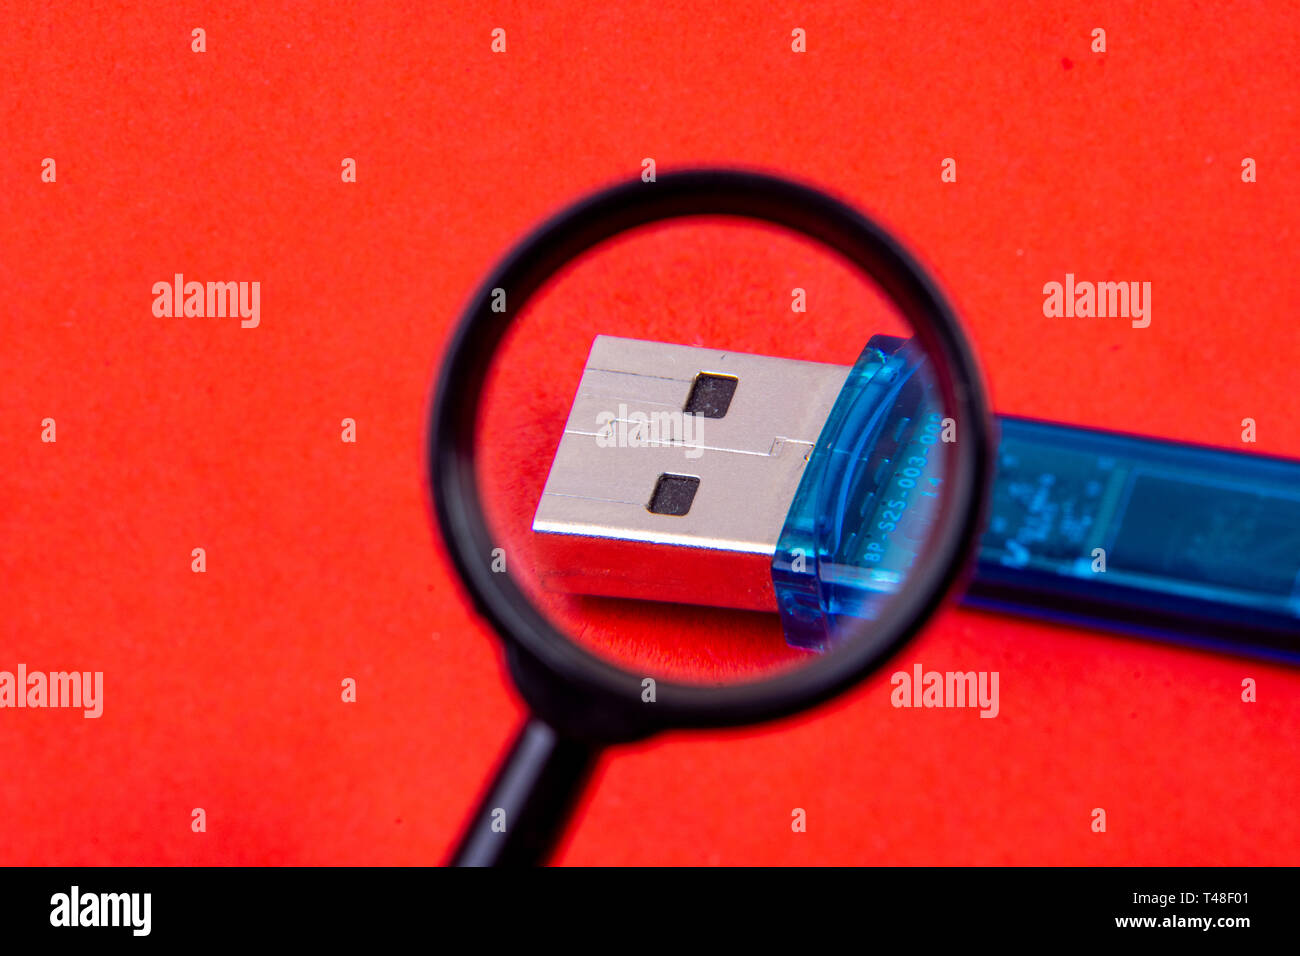 Data stick under the magnifying glass - search for clues - Stock Image